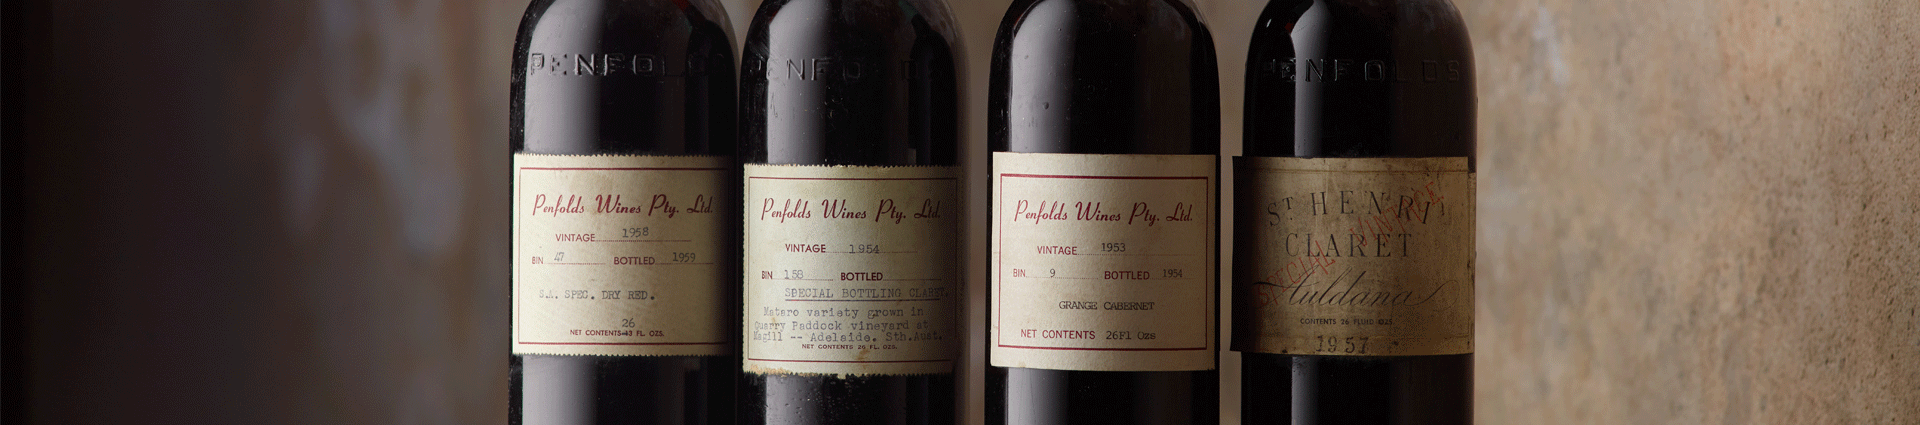 Four heritage Penfolds bottle labels from the 1950s